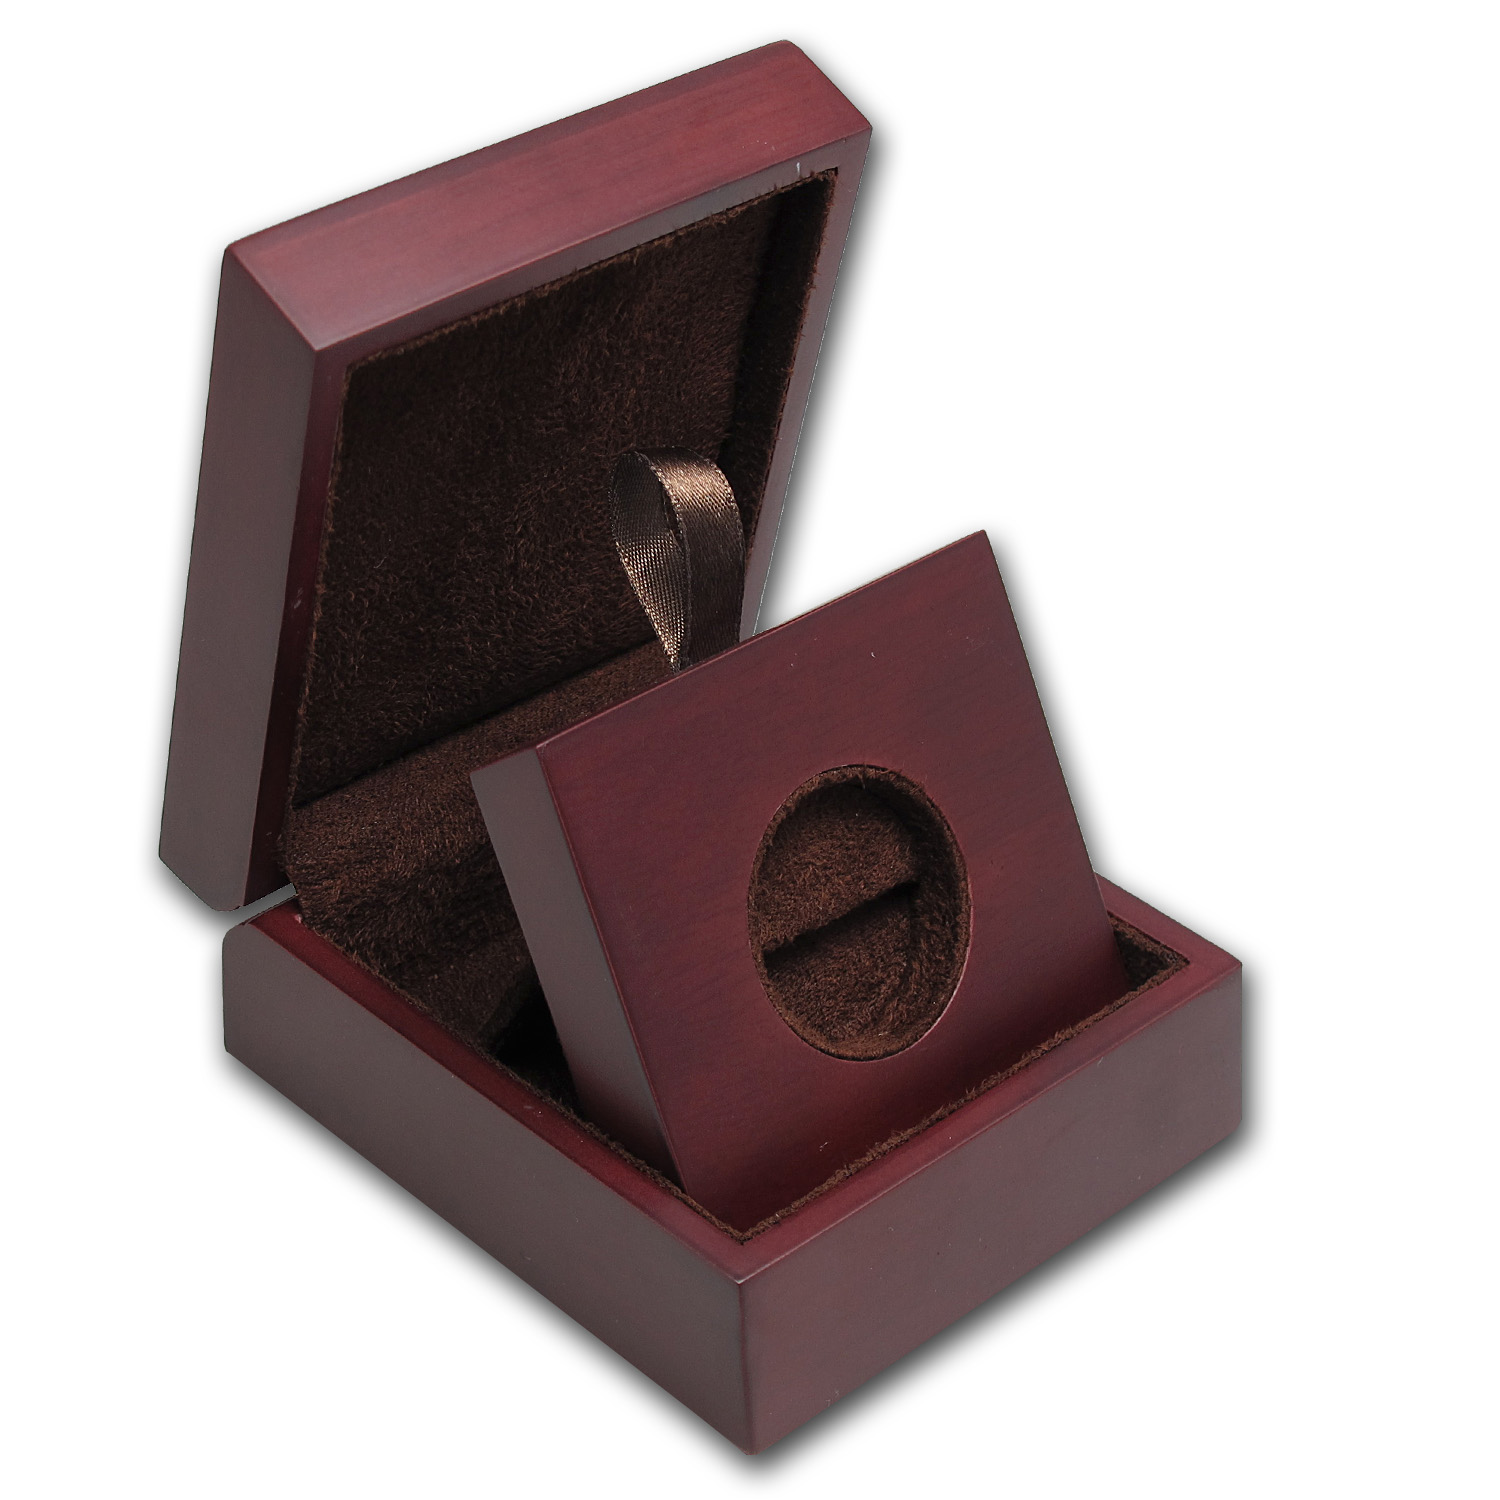 APMEX Wood Presentation Box - 1/2 oz Perth Gold Series 2